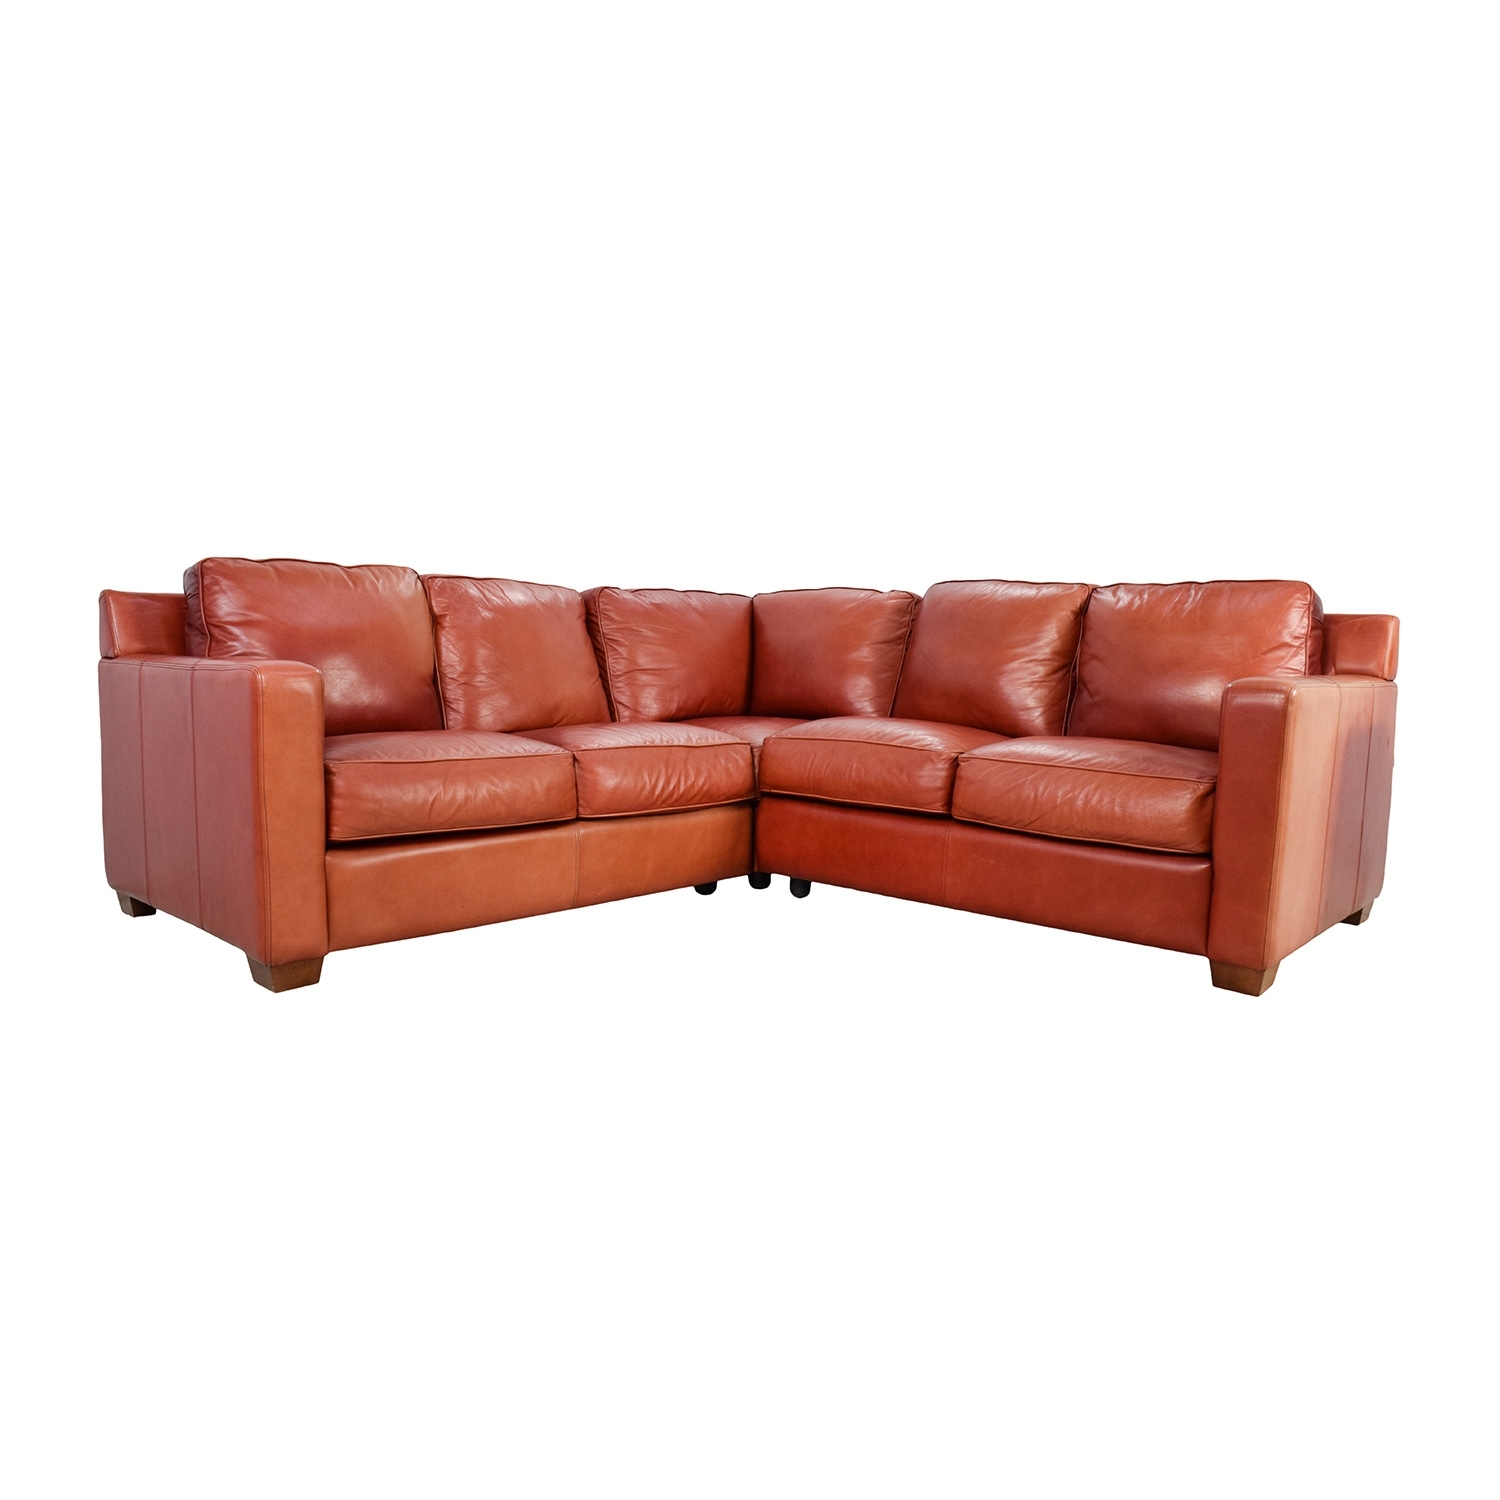 68% Off – Thomasville Thomasville Red Leather Sectional / Sofas Inside Thomasville Sectional Sofas (View 2 of 10)